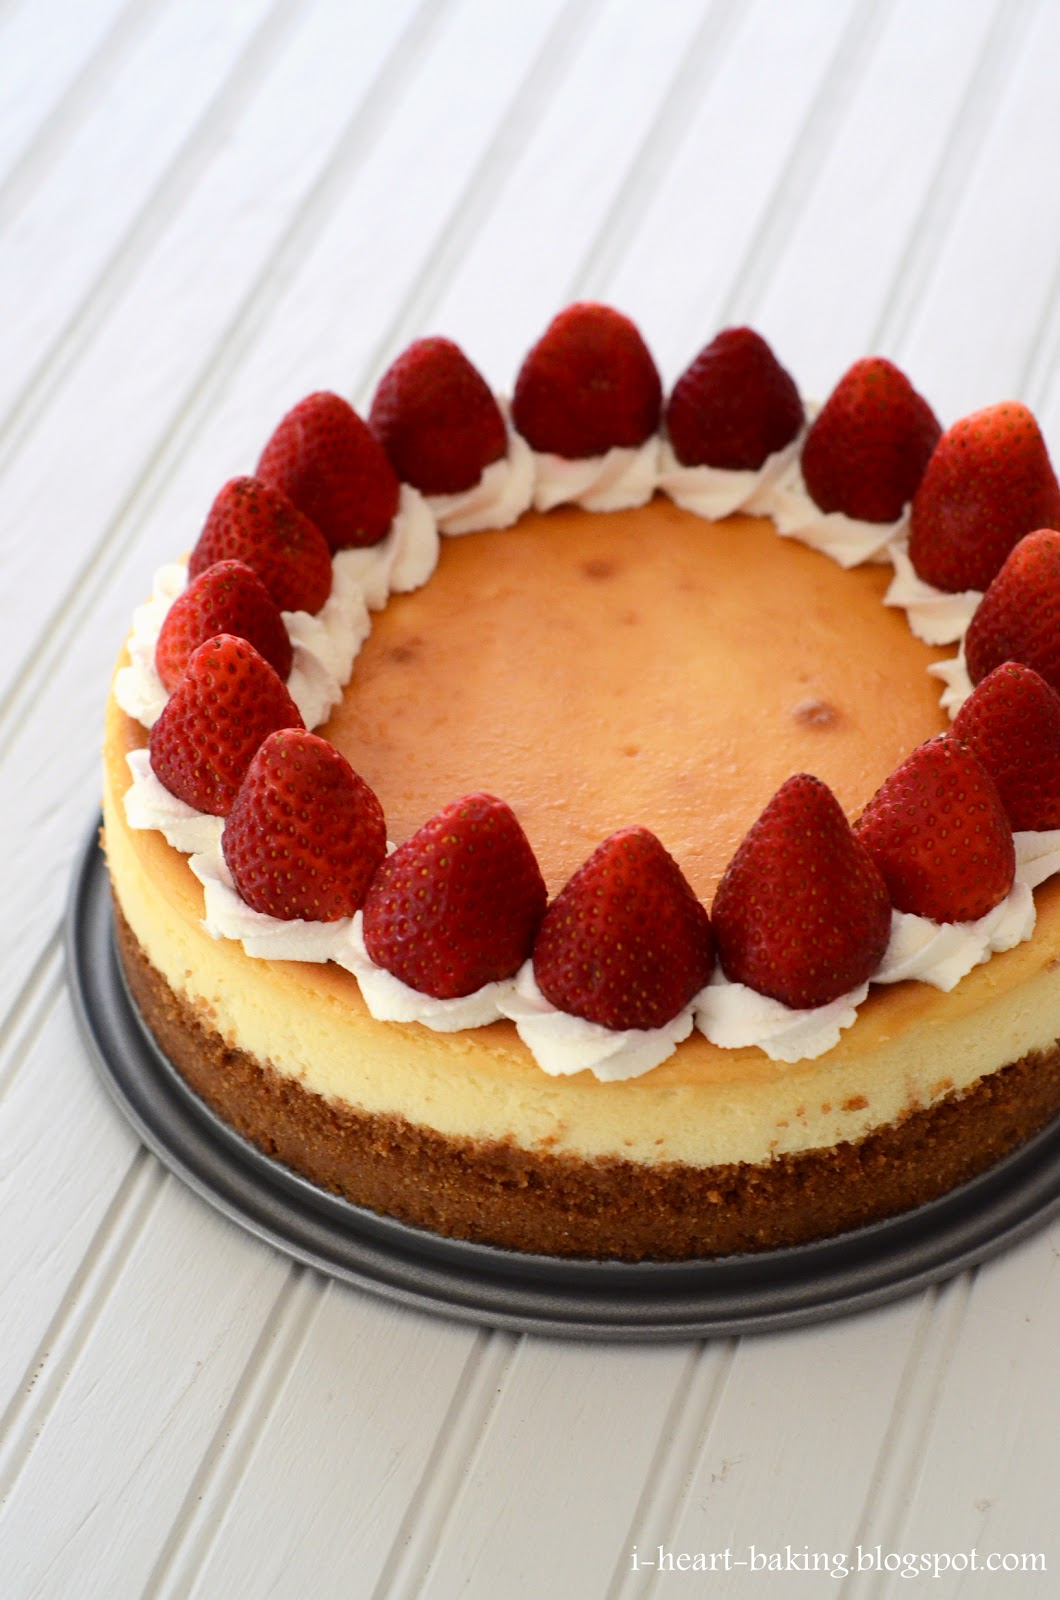 How To Decorate A Strawberry And Cream Cake